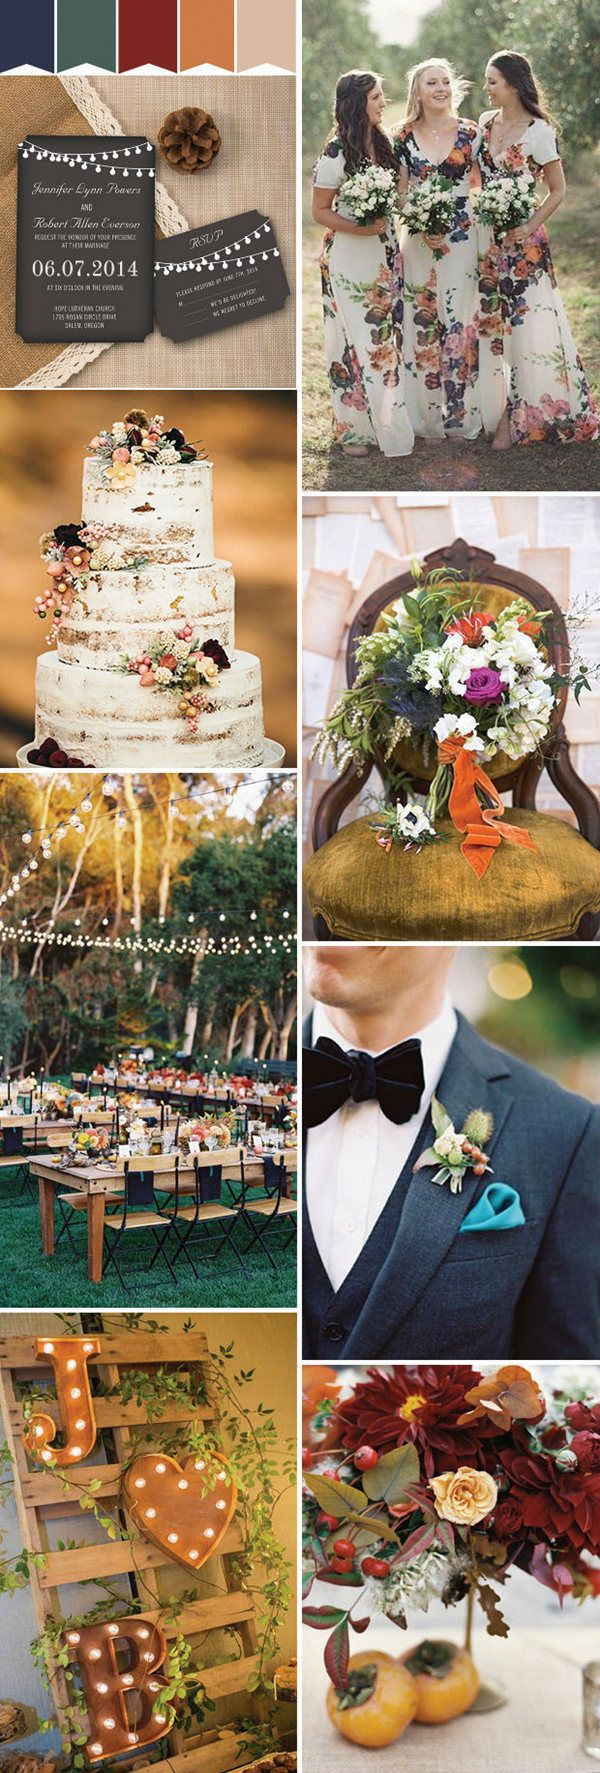 Pretty boho wedding inspiration for spring